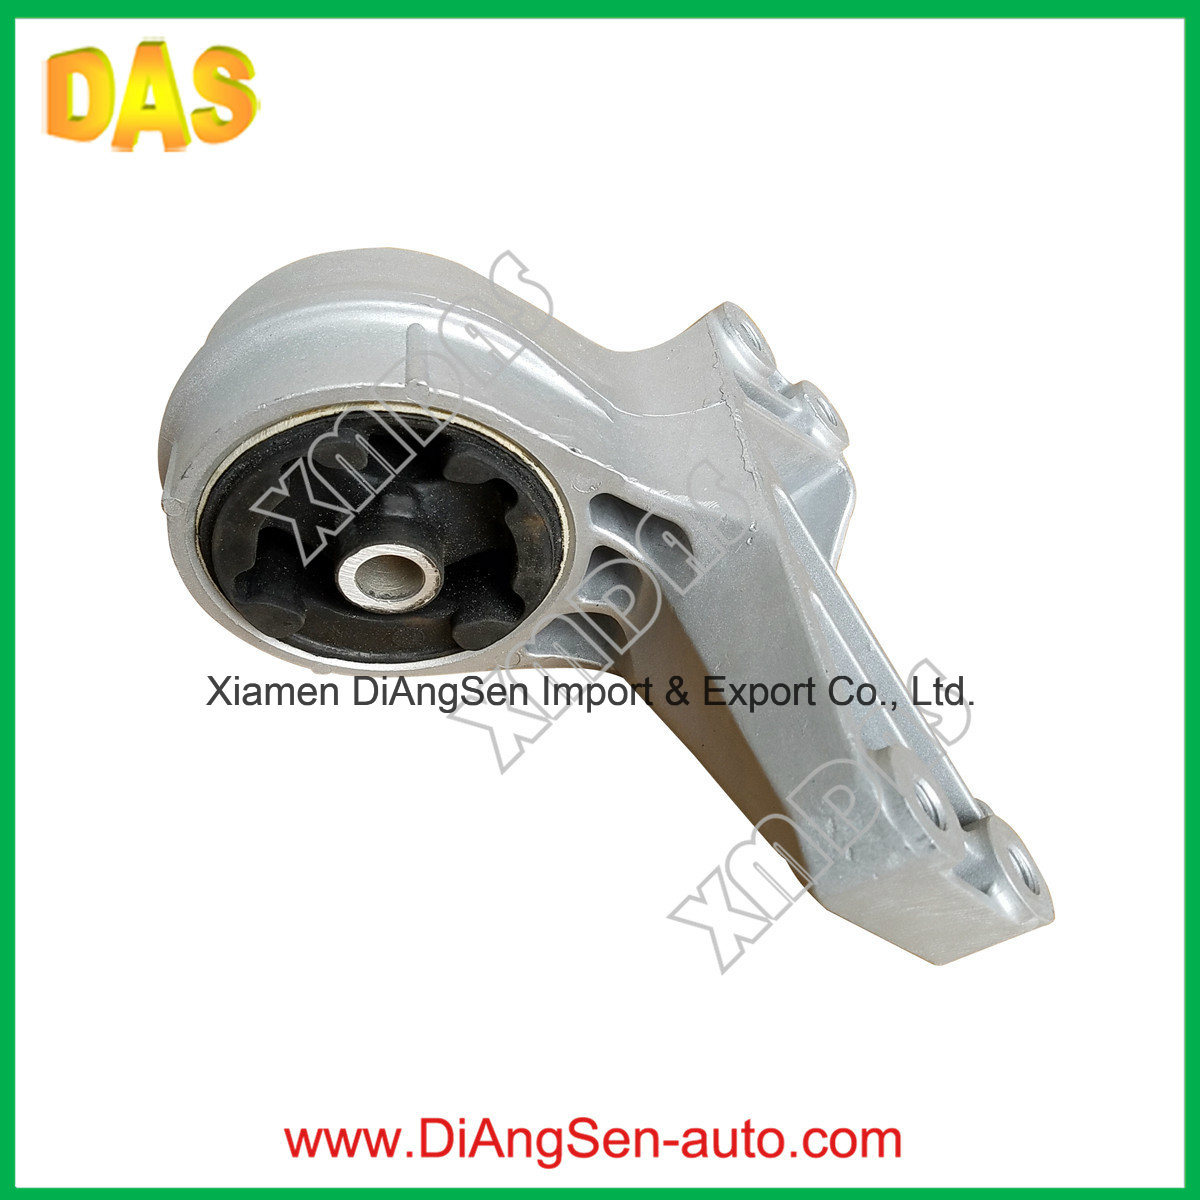 China Auto Spare Parts Rubber Motor Engine Mounting for Chevrolet ...